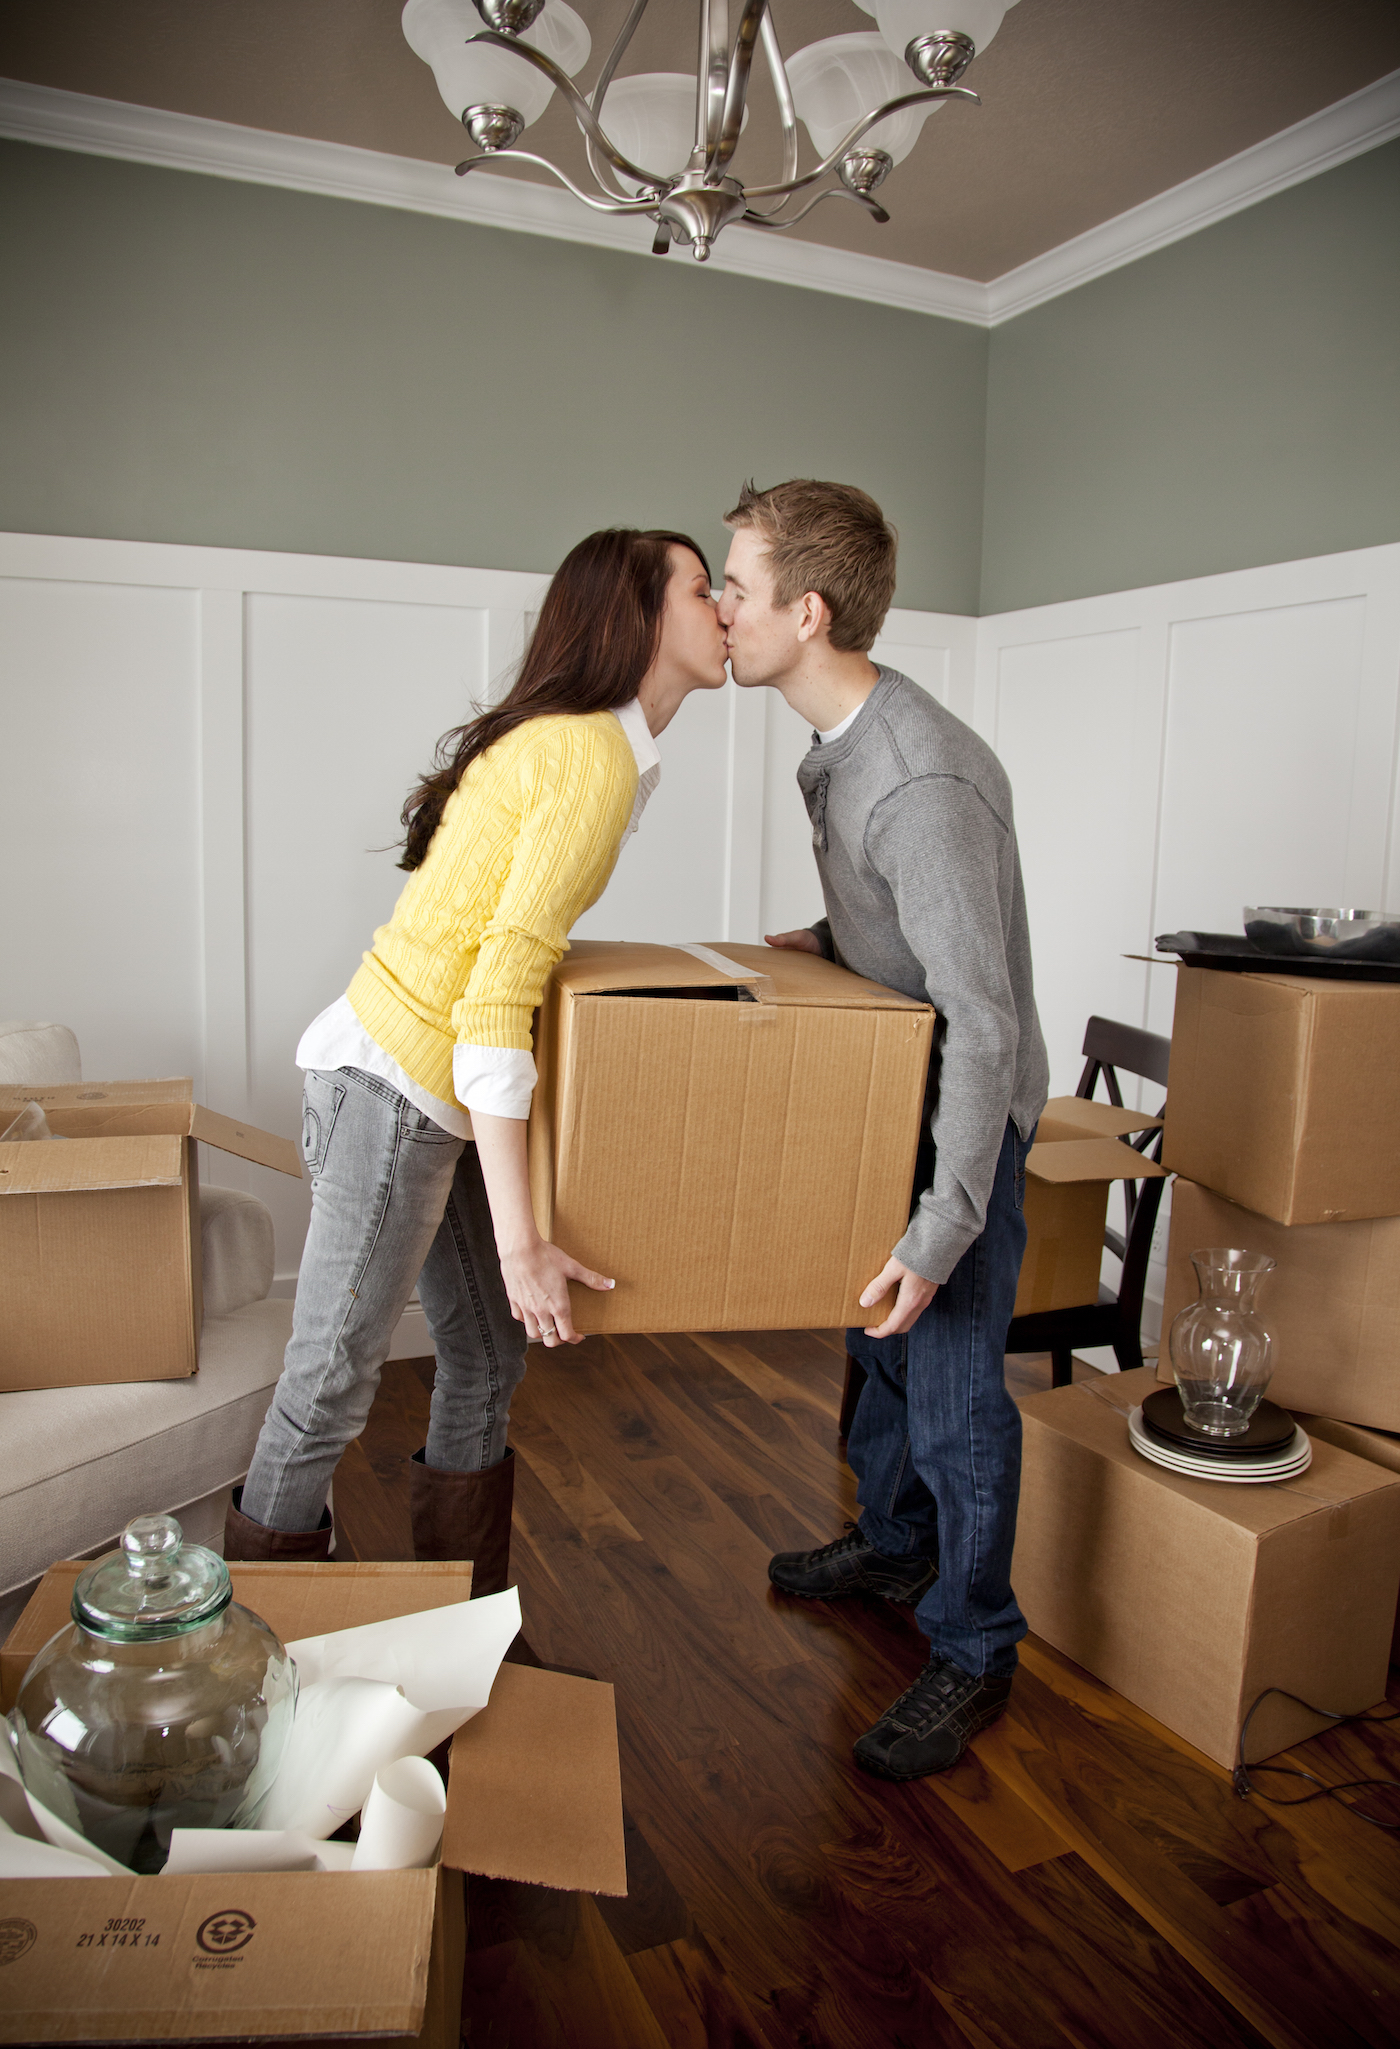 Young couple kissing while moving boxes into their new home built by McArthur Homes